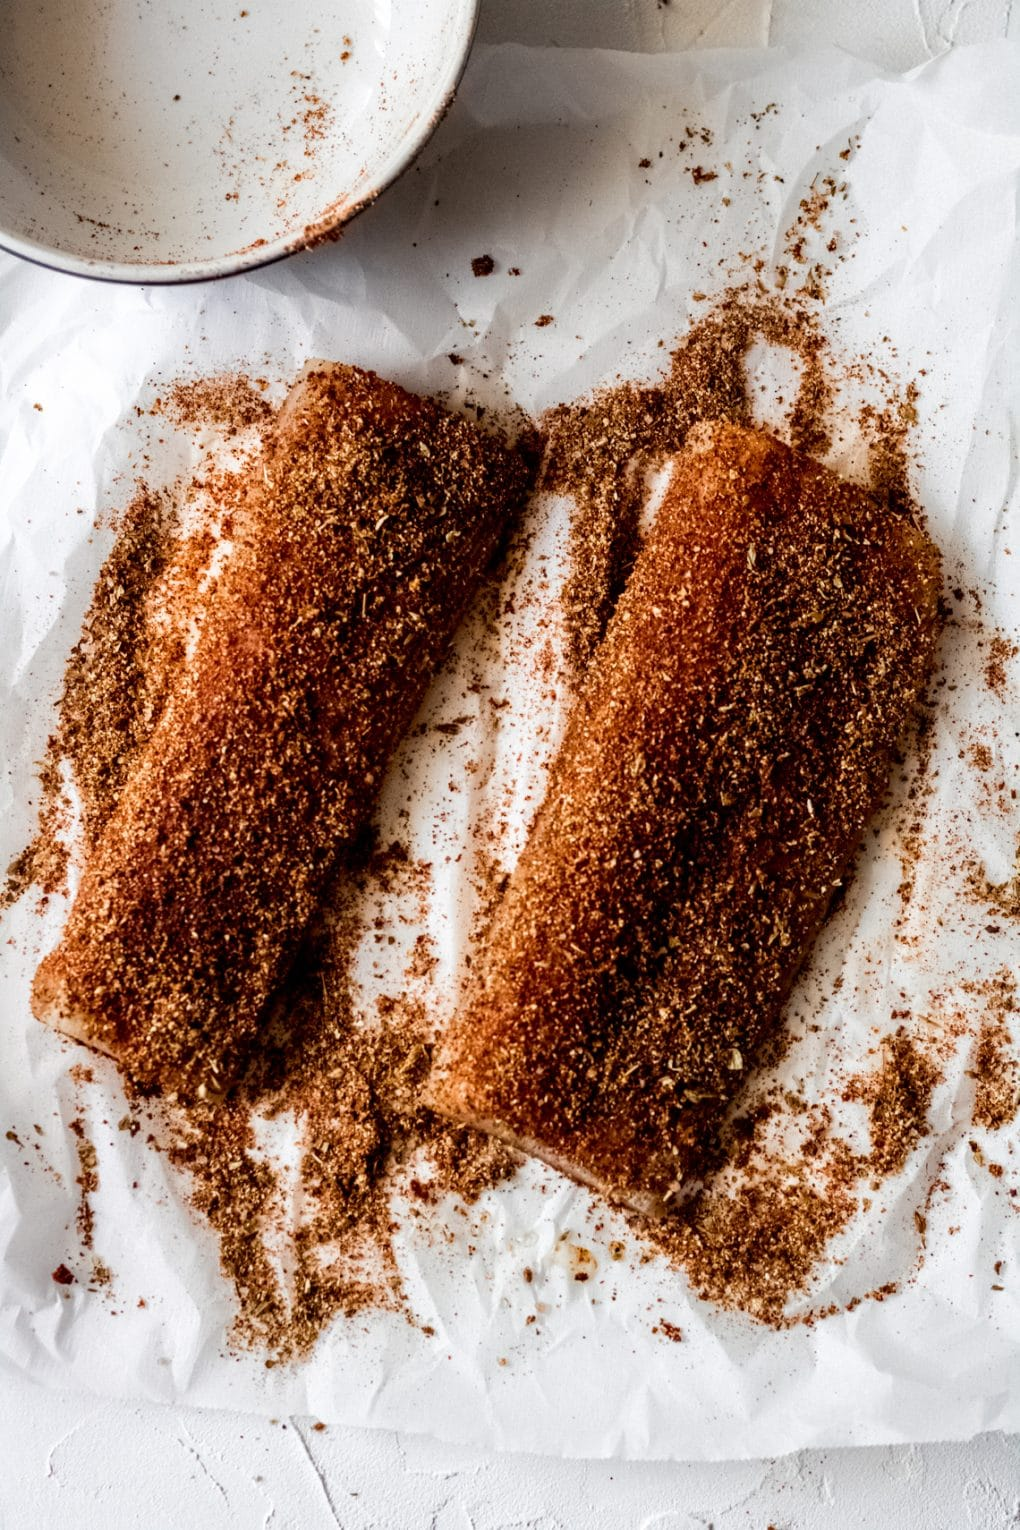 two Mahi Mahi fillets coated in blackening spices